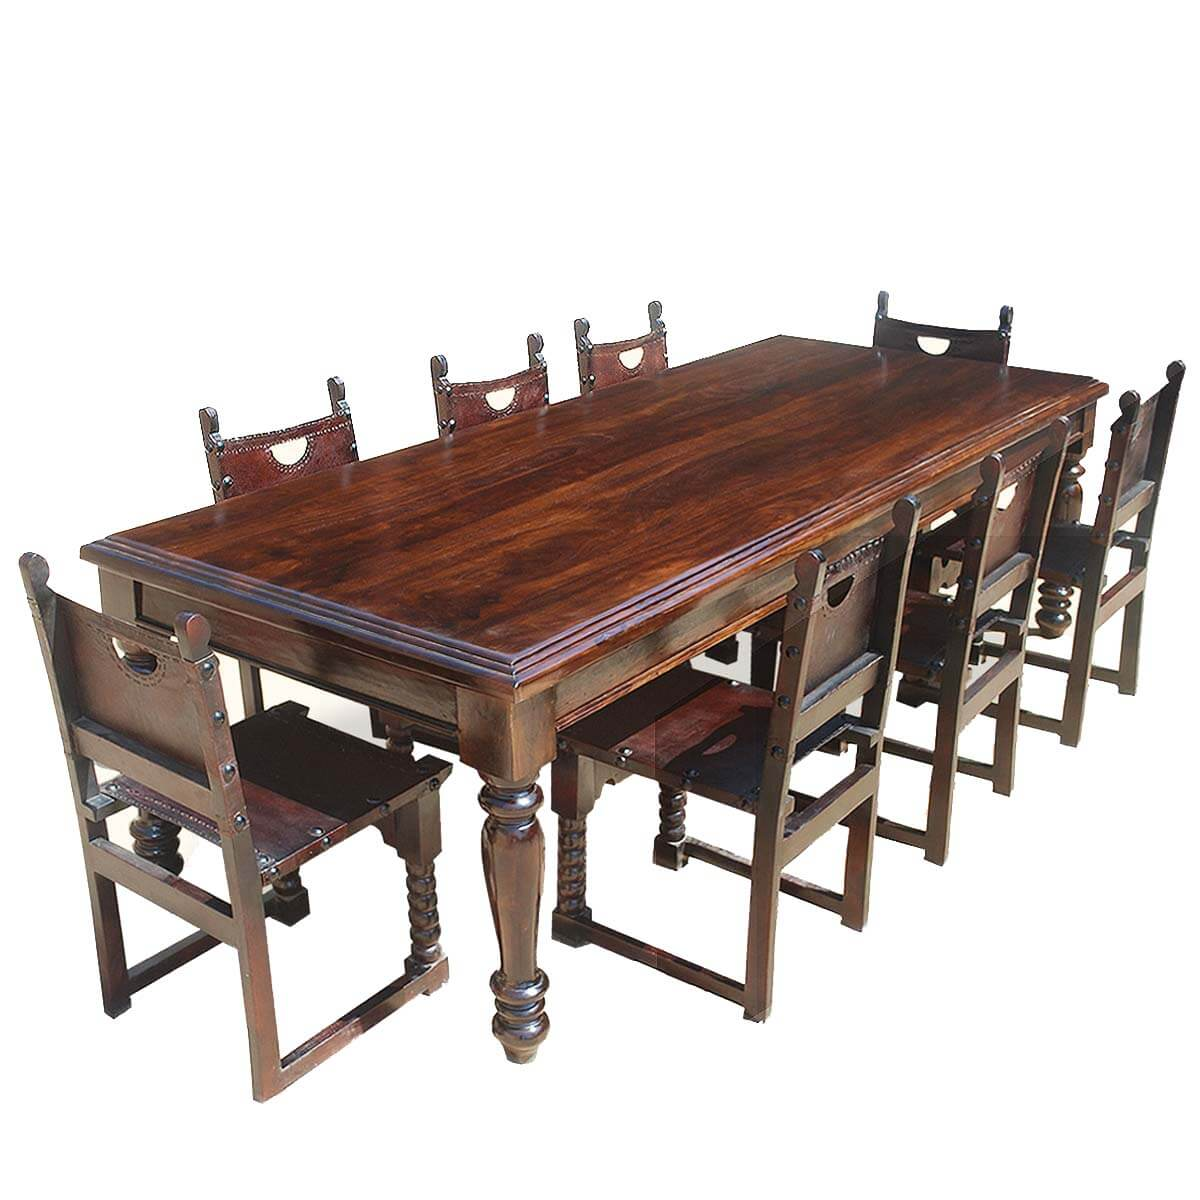 Large rustic solid wood dining room table w 8 leather for Solid wood dining room table and chairs